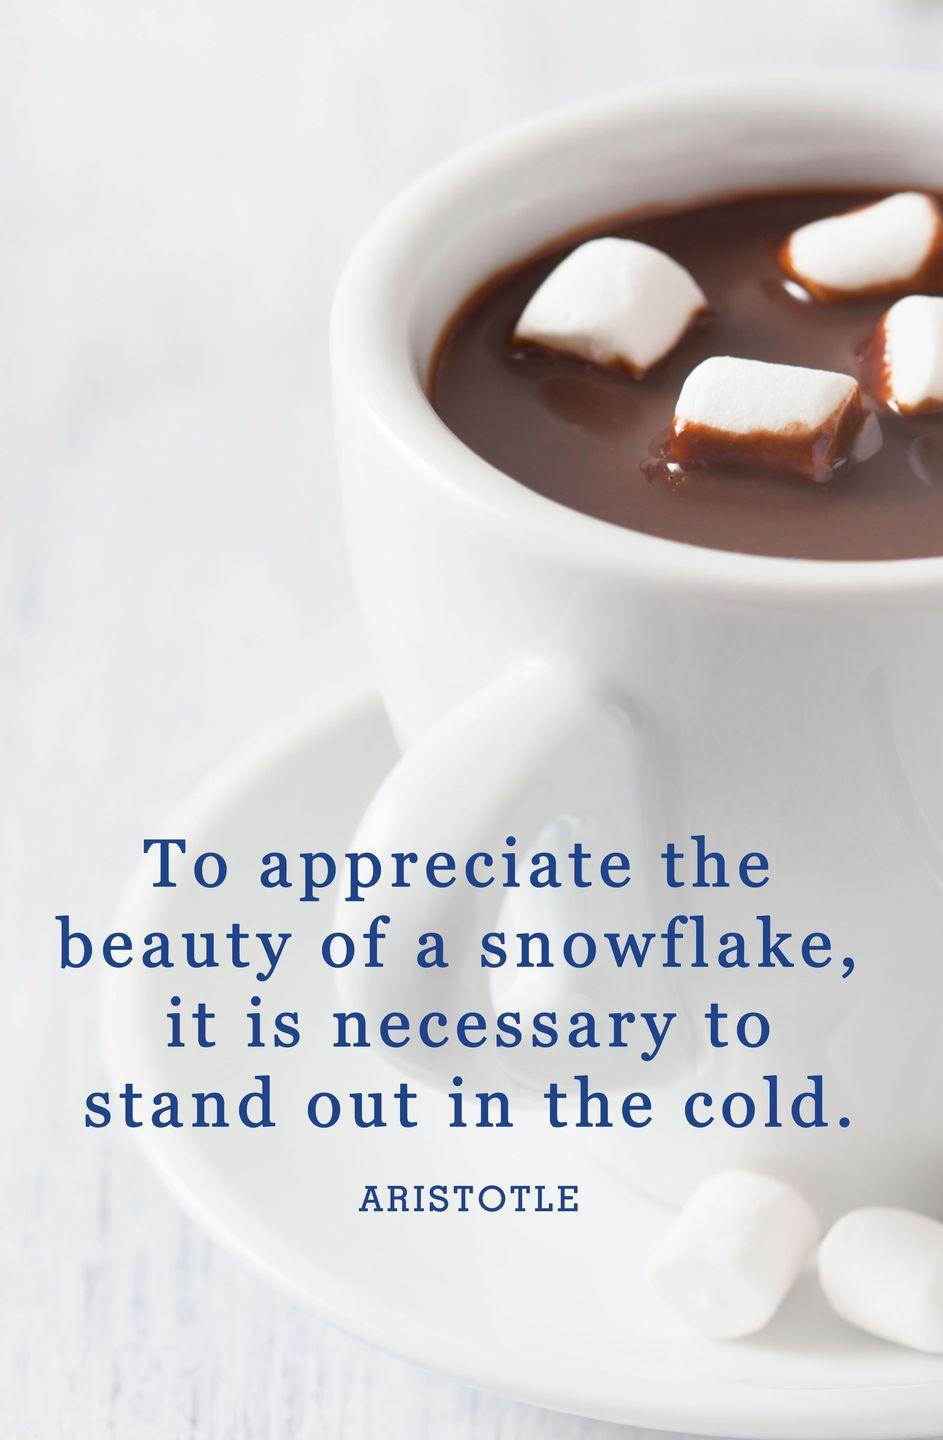 "<p>""To appreciate the beauty of a snowflake, it is necessary to stand out in the cold.""</p>"